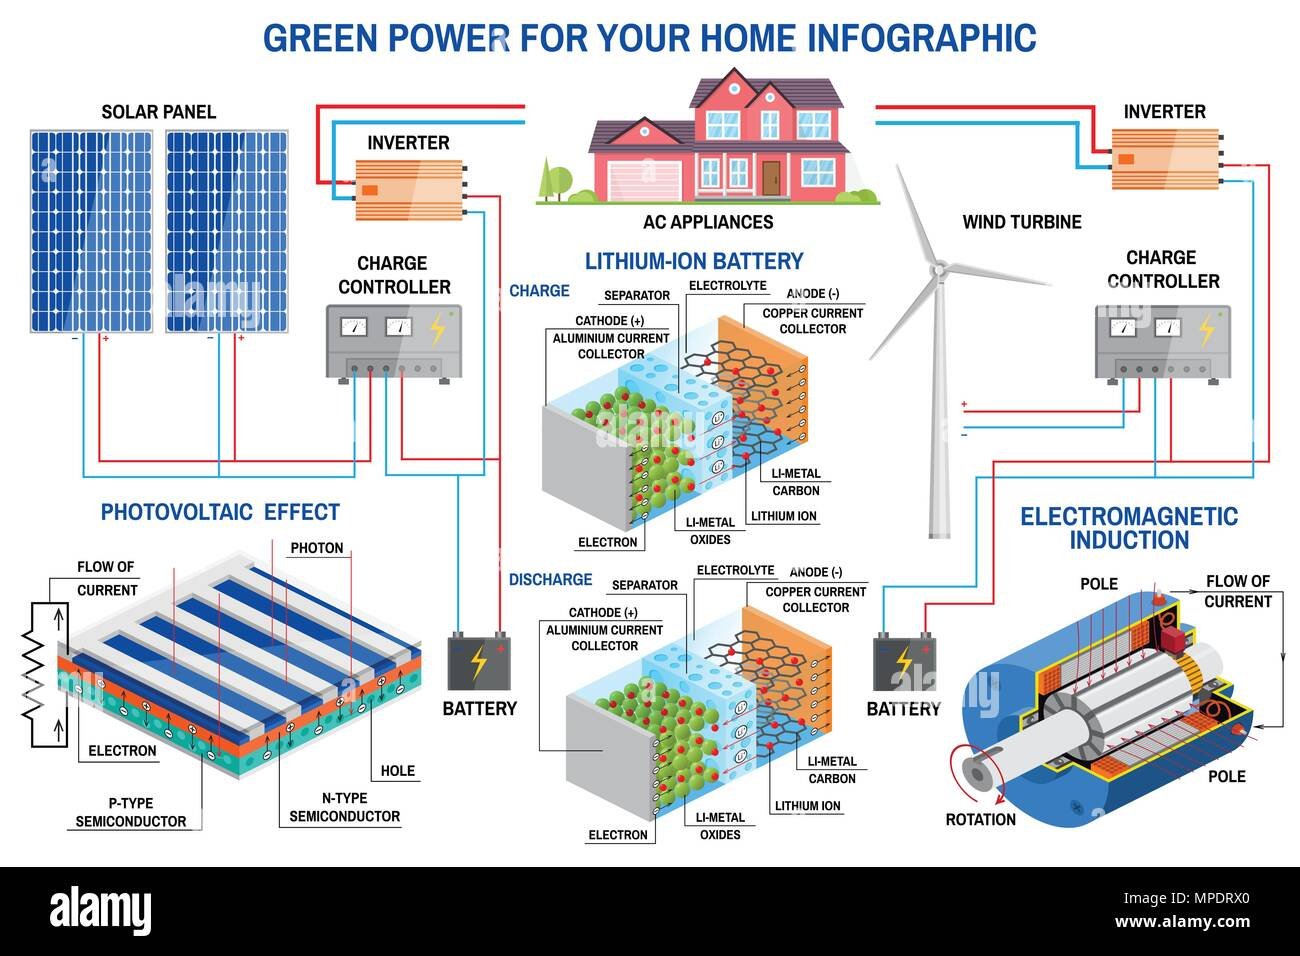 Lithium Stock Vector Images Alamy Digital Pwm Solar Charge Controller Missouri Wind And Panel Power Generation System For Home Infographic Turbine